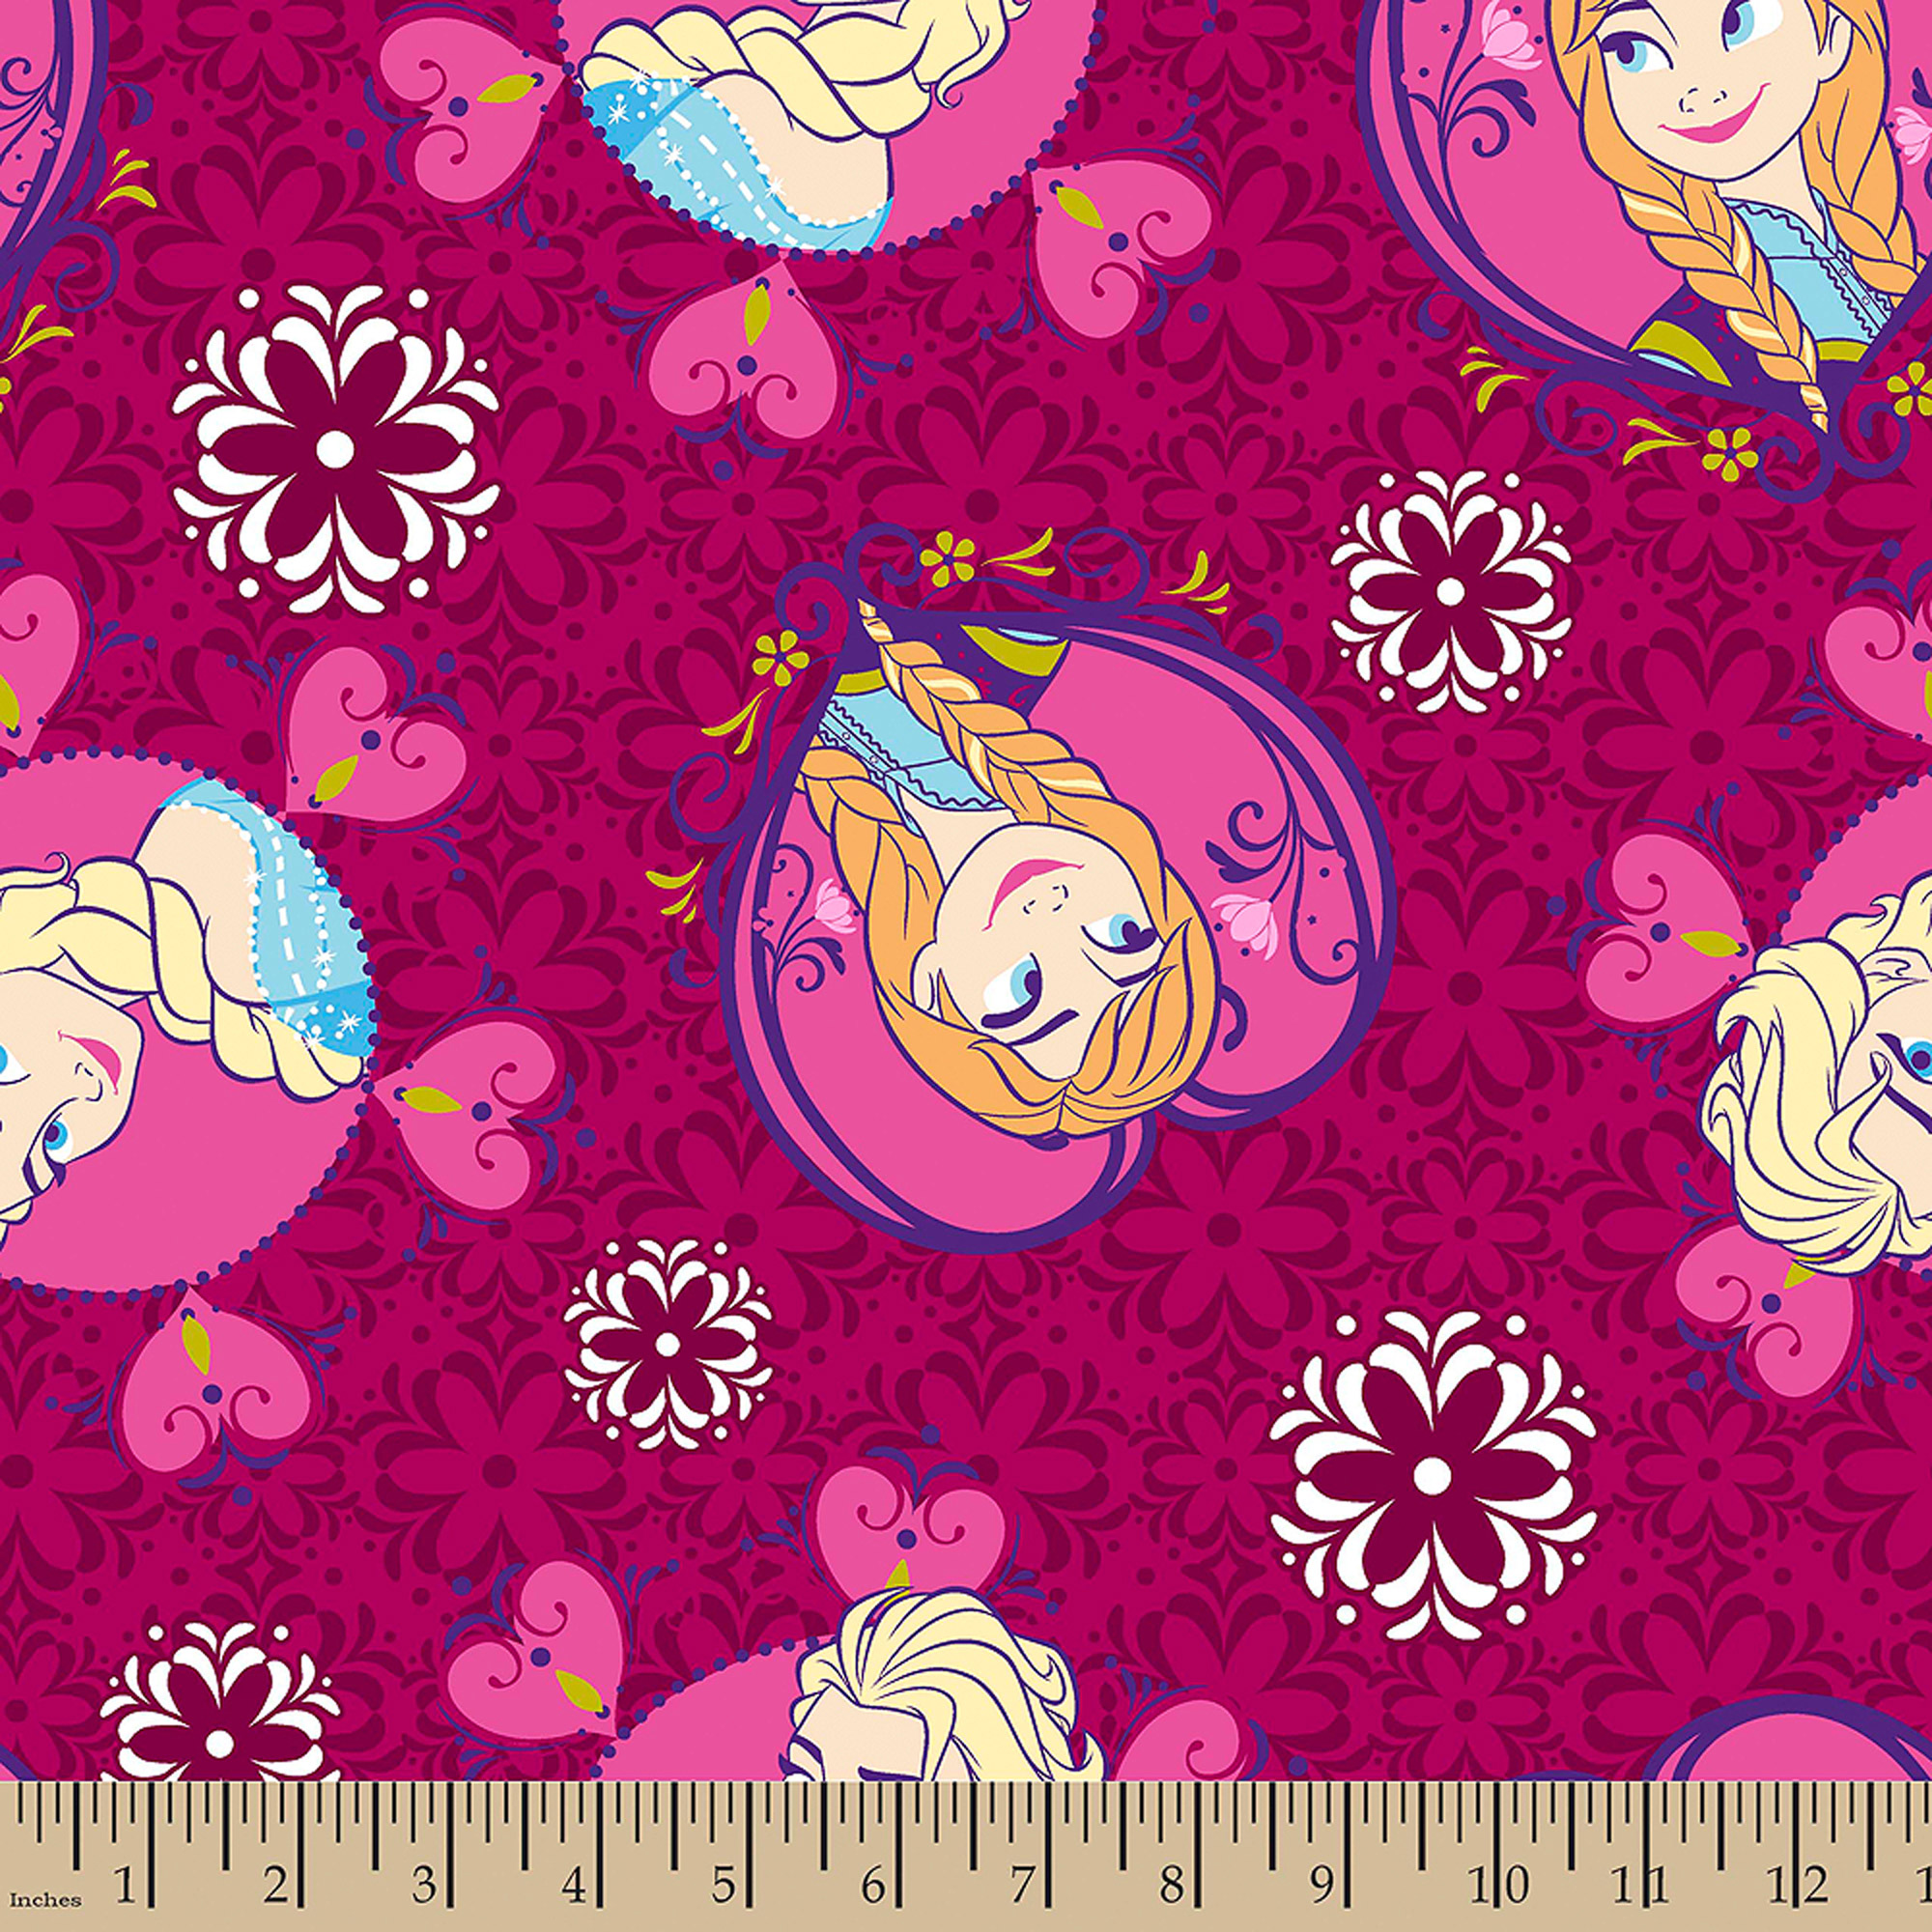 "Disney Frozen Sisters Framed Toss, Minky Fleece, Pink, 59/60"" Wide, Fabric By The Yard"